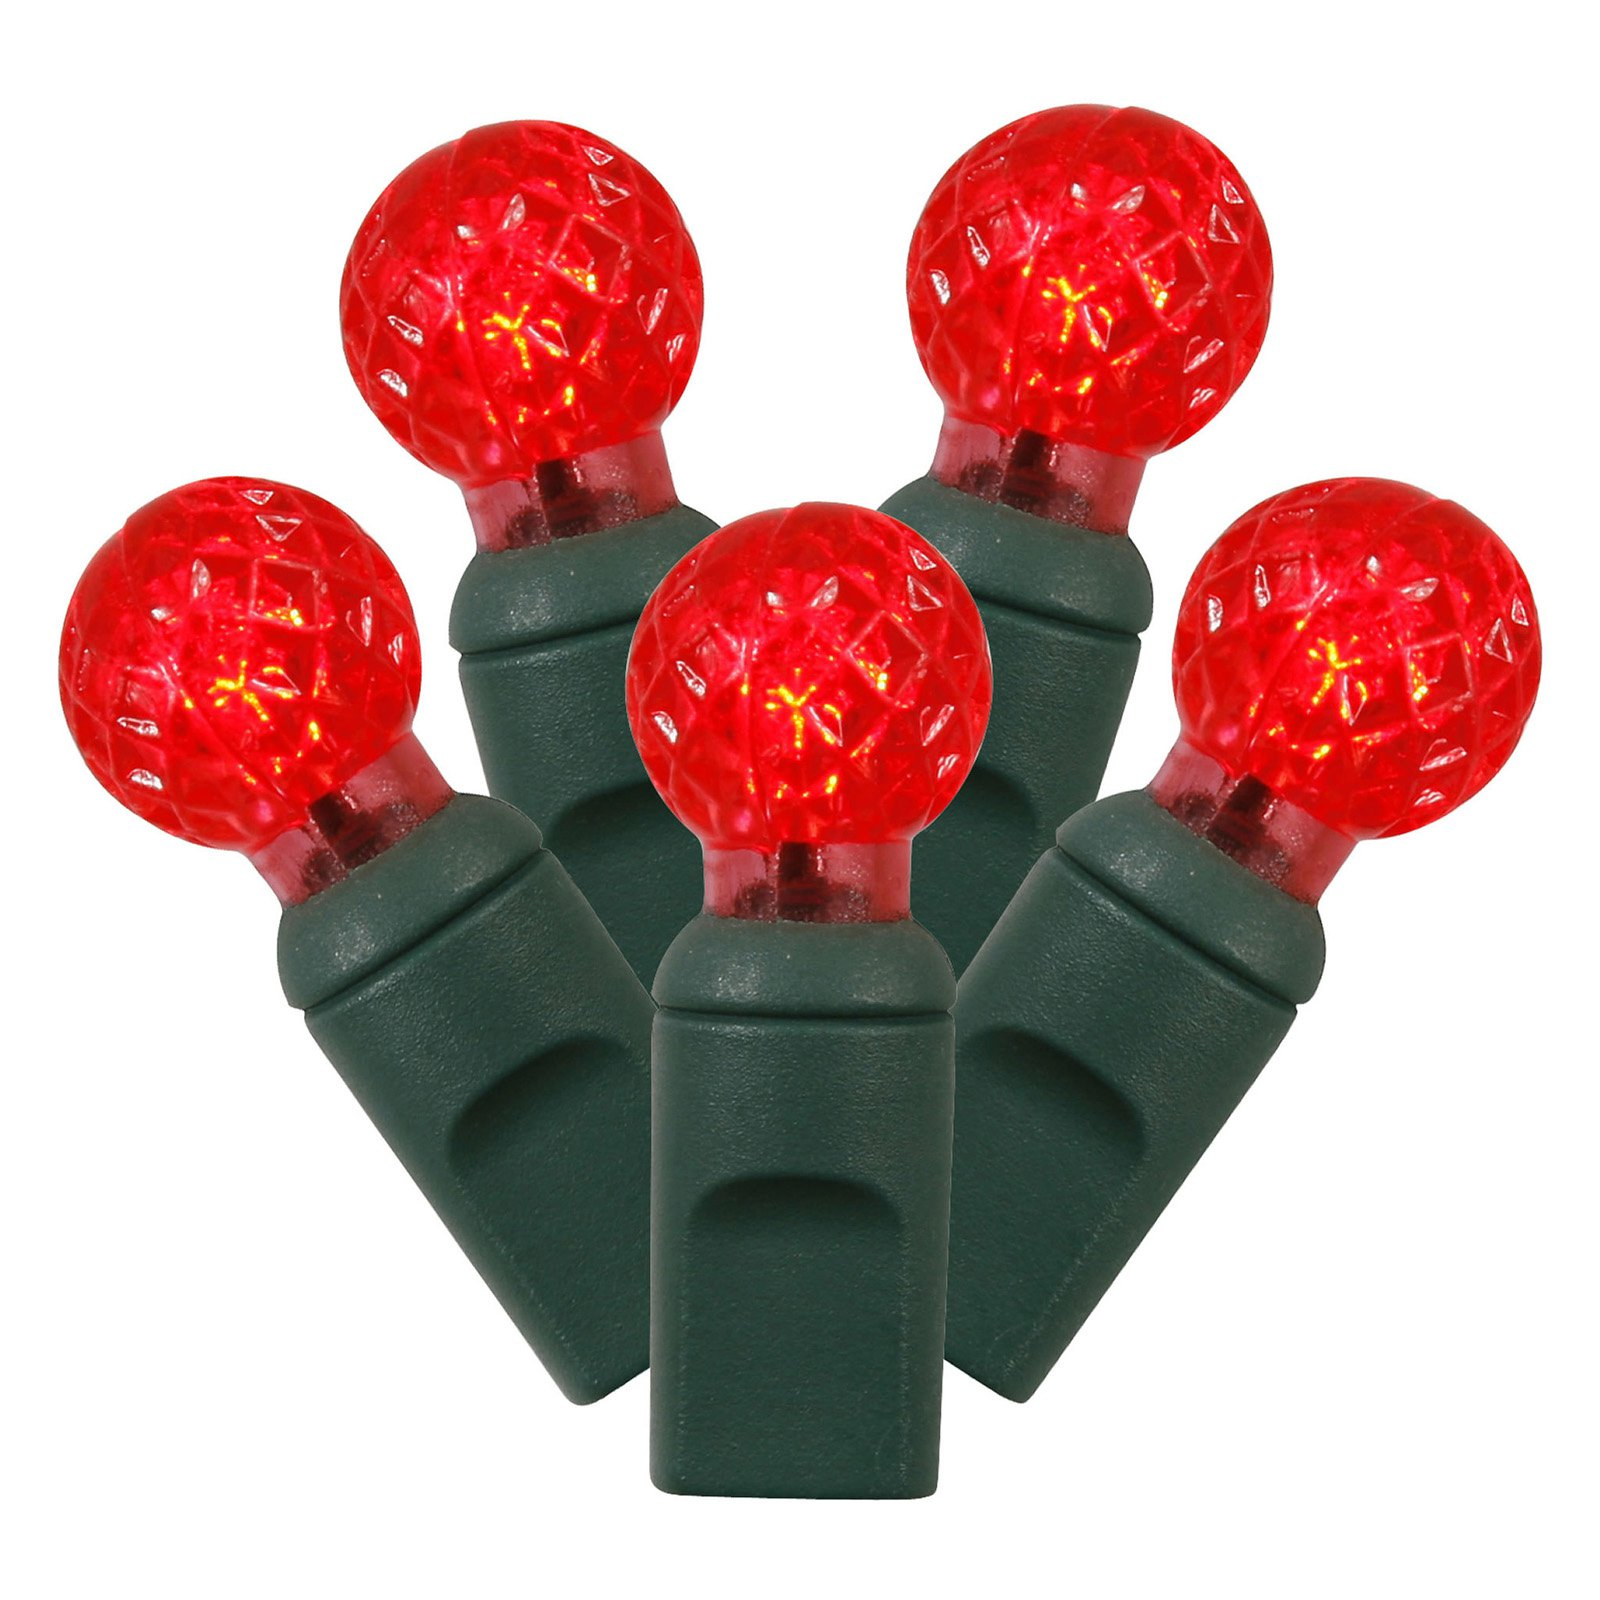 Vickerman 50 ct. Red G12 LED Lights with Green Wire - Set of 2